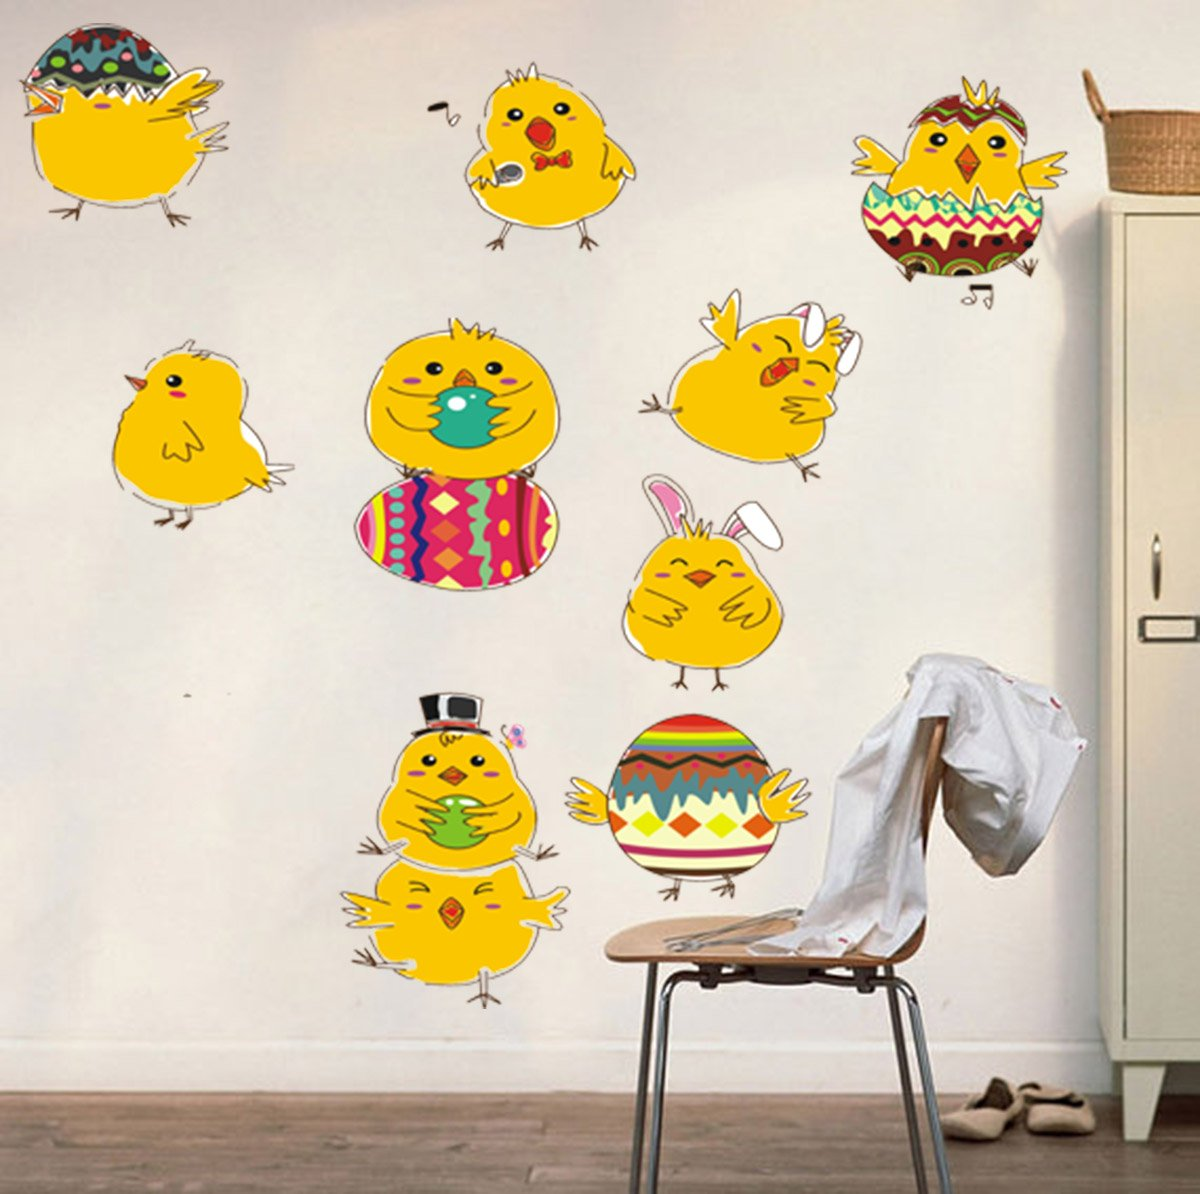 Awesome Easter Wall Decorations Collection - All About Wallart ...